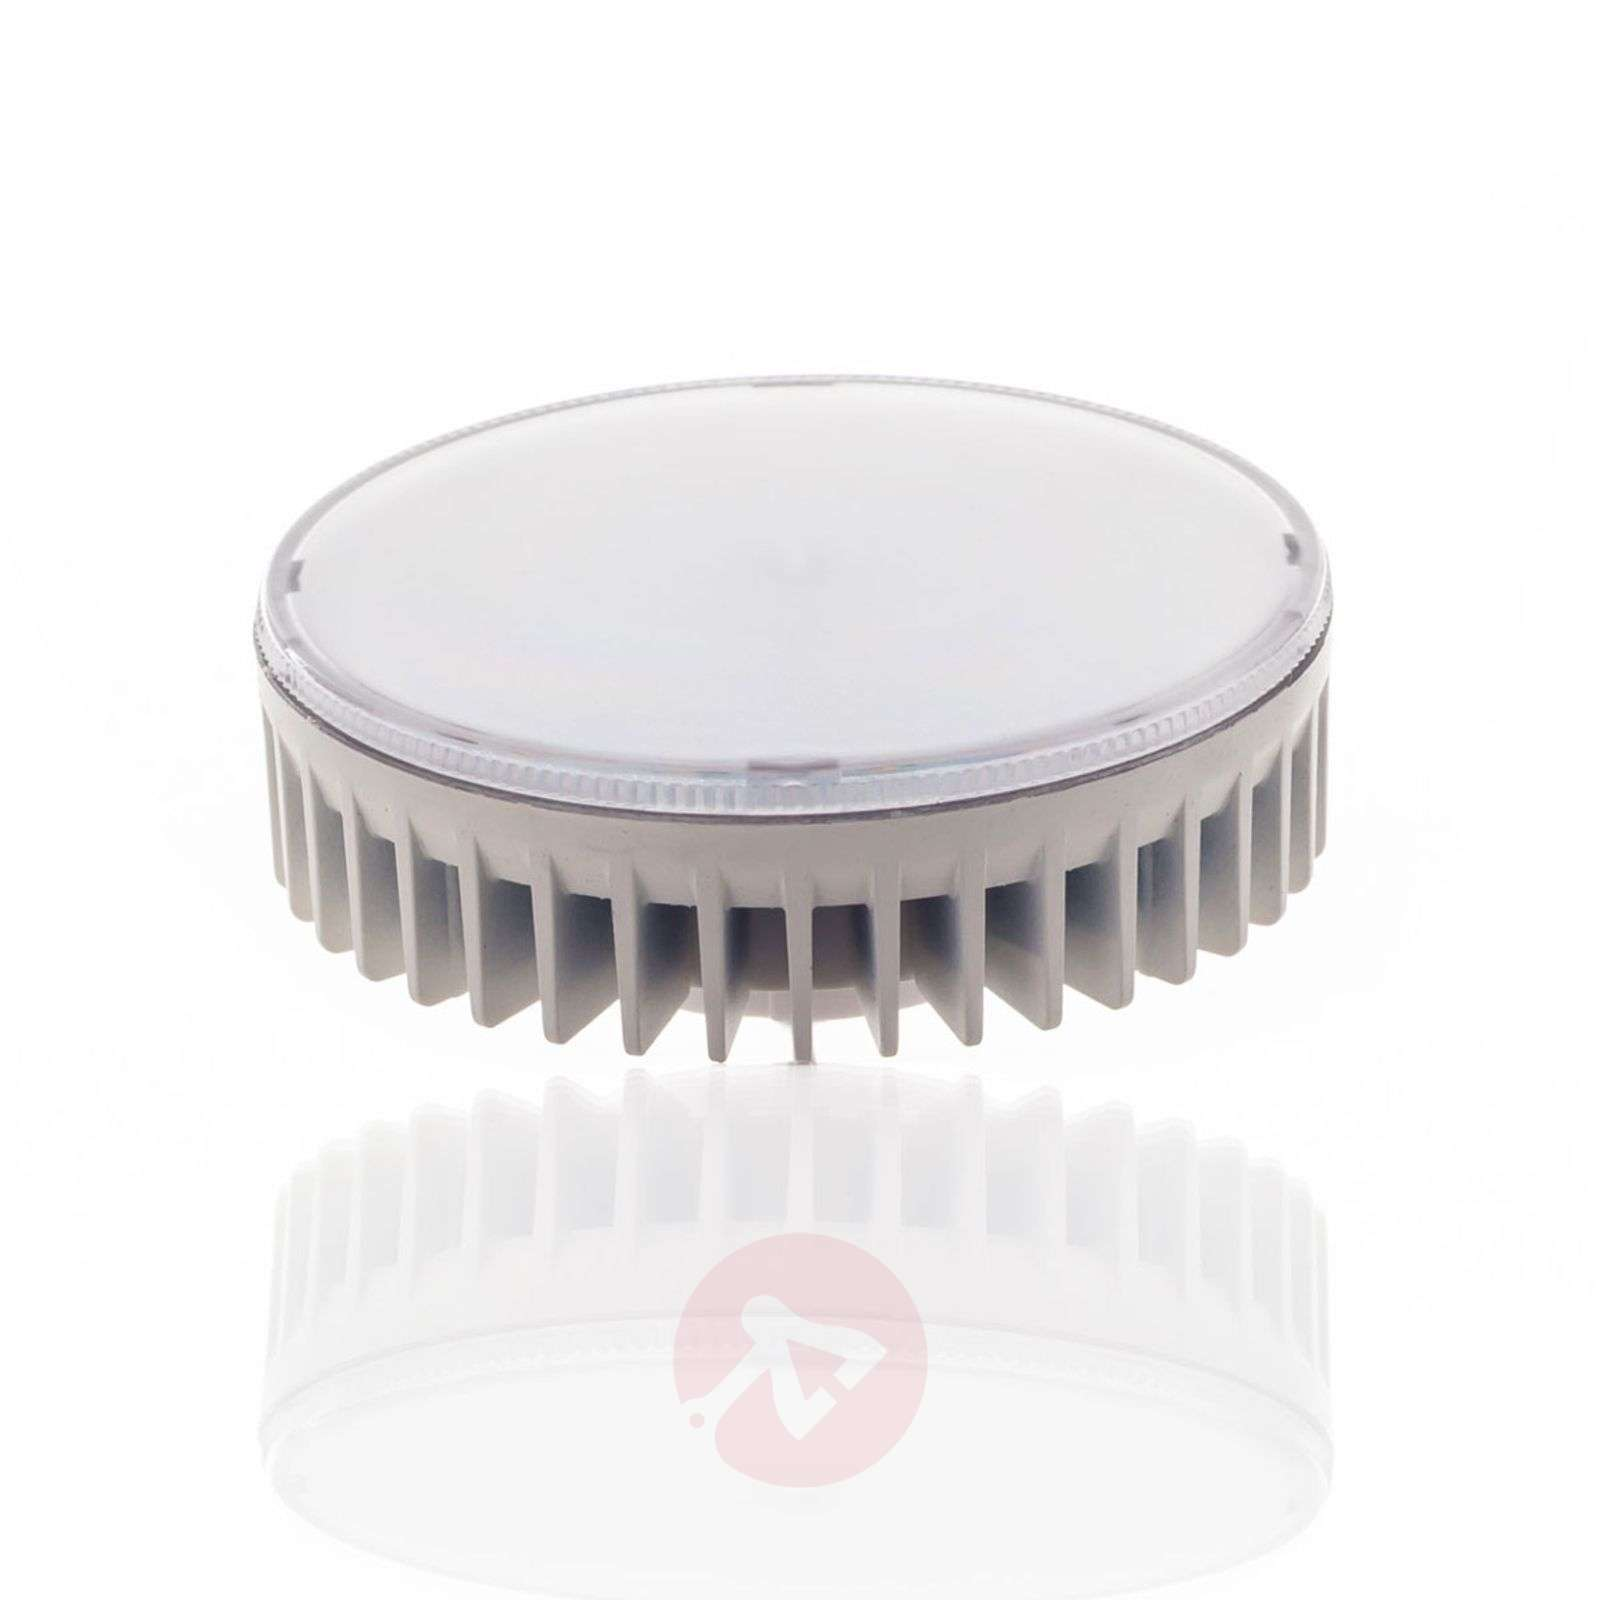 With Cool White Led 7w Lamp Gx53 700lm kuTPwOXZil